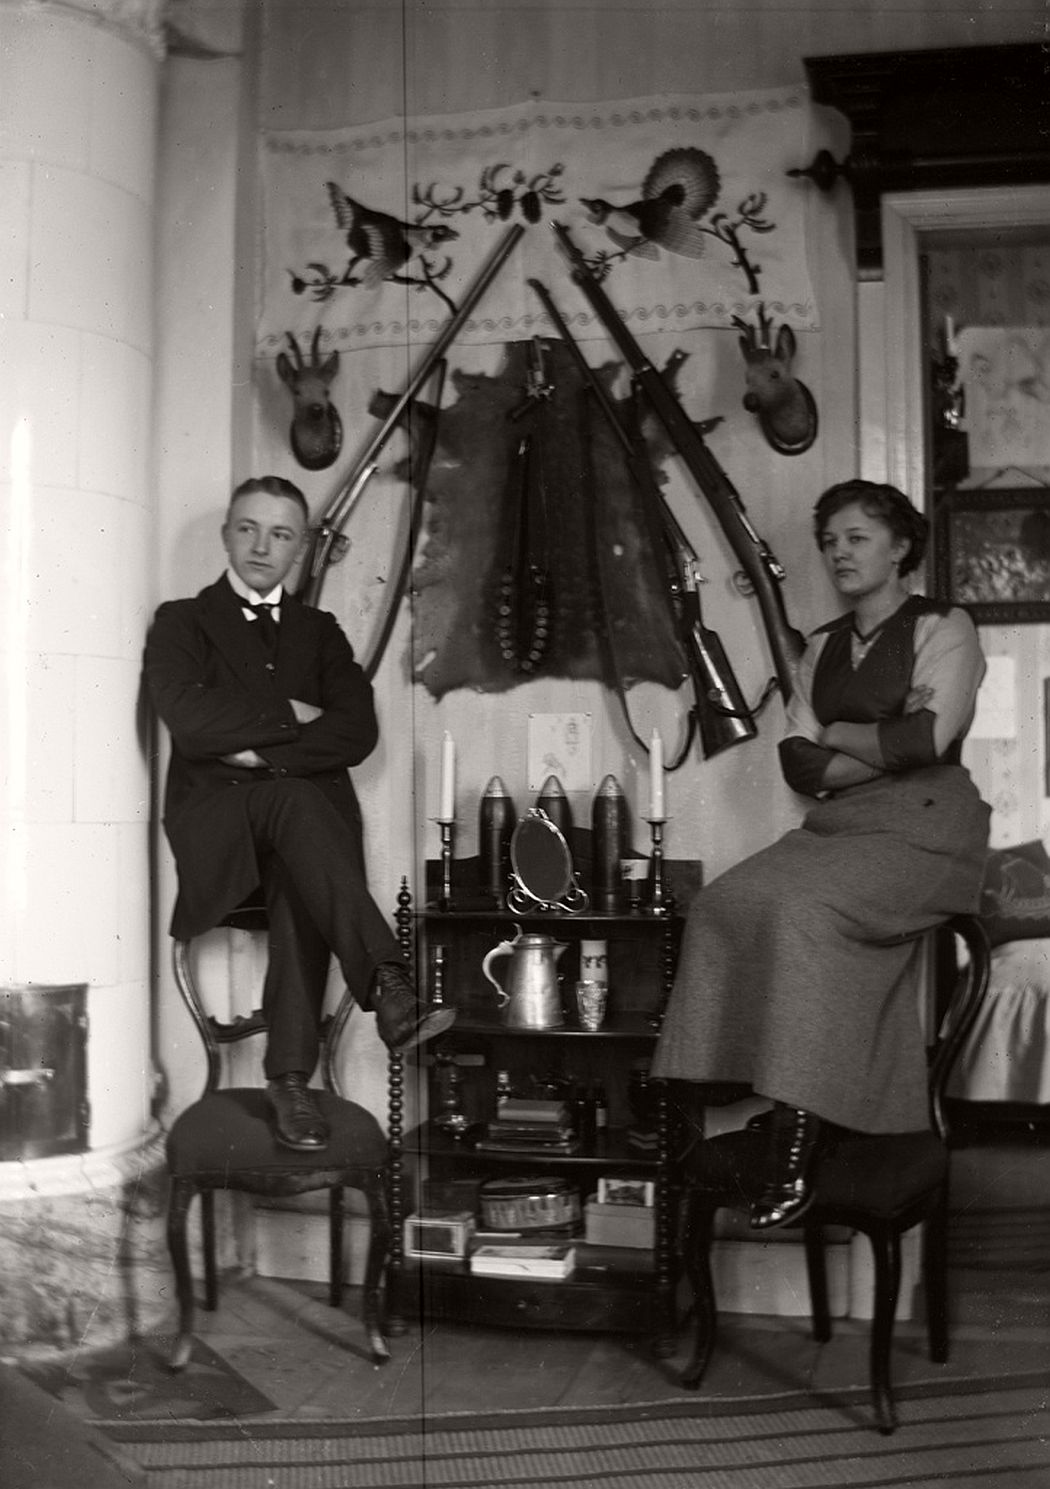 The siblings Carola and Henning Aurell photographed at his home in Frinnaryds, 1913.